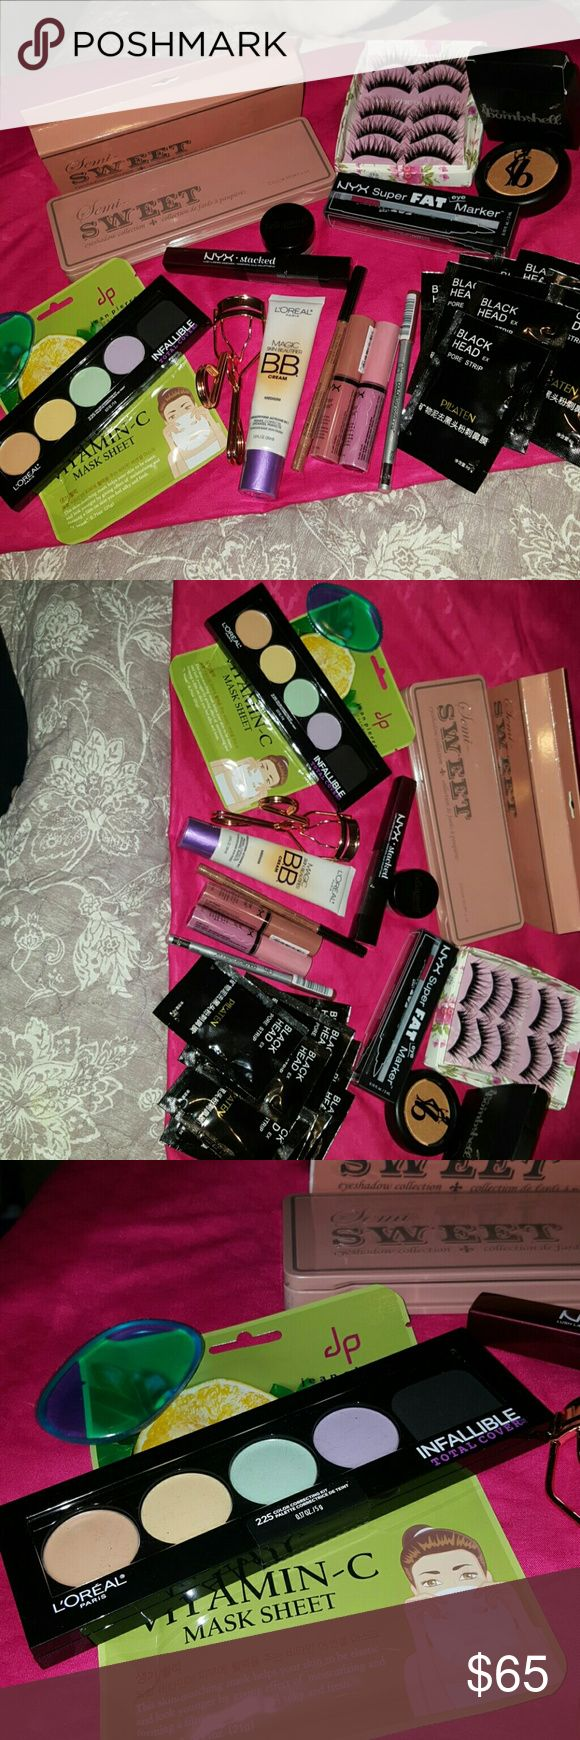 ?????HUGE Makeup Lot????? All new and sealed! You will receive everything u see in the pics! I have different shades of liners, glosses if needed. Eye shadow palettes, concealer palettes, mascara, eye liner, lip glosses, lip liners, black head strips, lashes, lash curler, blush, BB cream, glitter (for lips, eyes, body etc)! I will also send out a couple free gifts with this bundle. Please don't hesitate to ask any questions! Open to reasonable offers! Please no offers through comments. Ty…